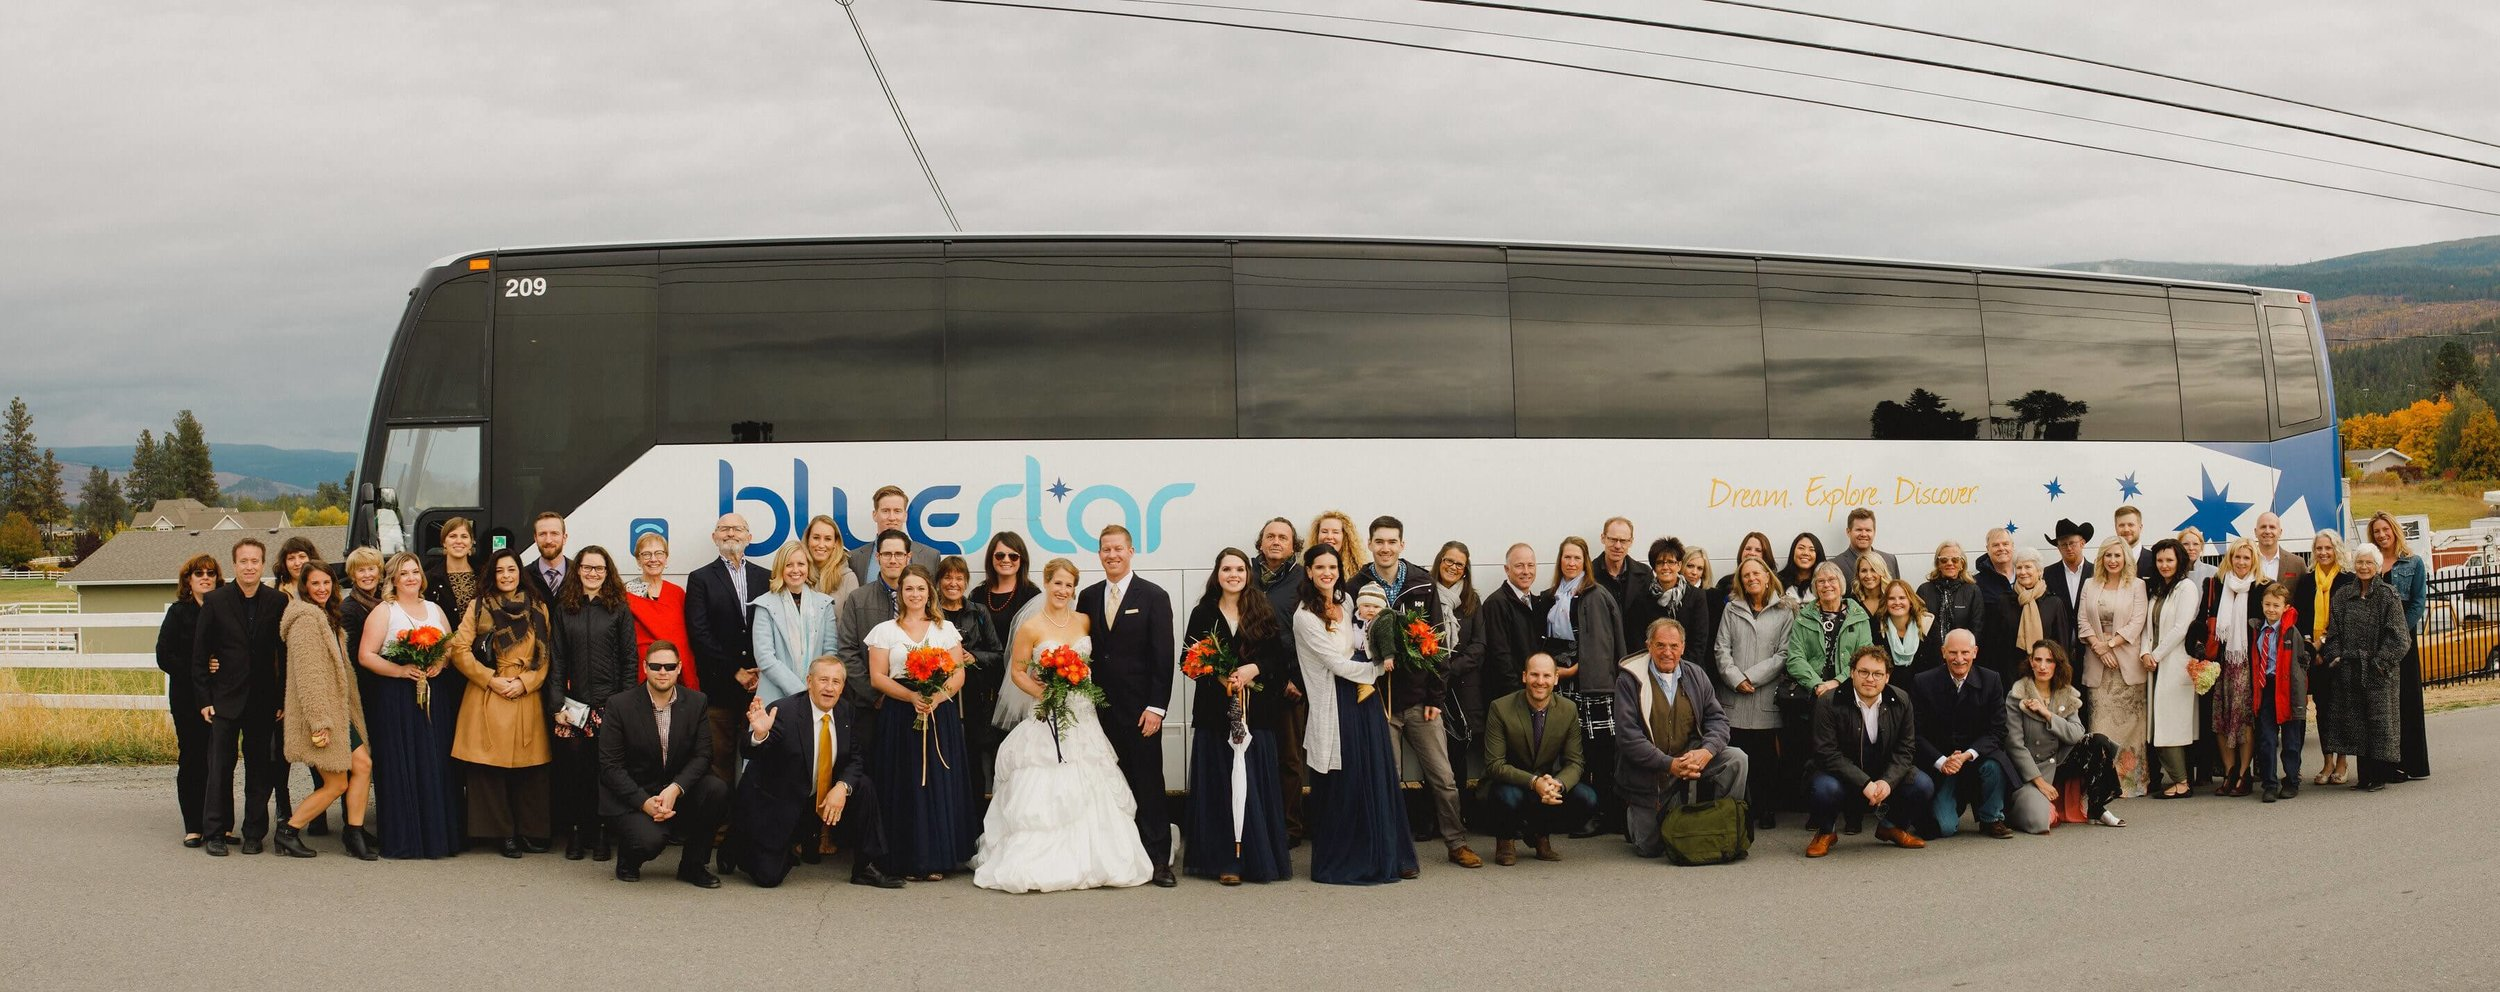 A BlueStar Wedding - Transportation for the entire wedding party for a very special marriage day.